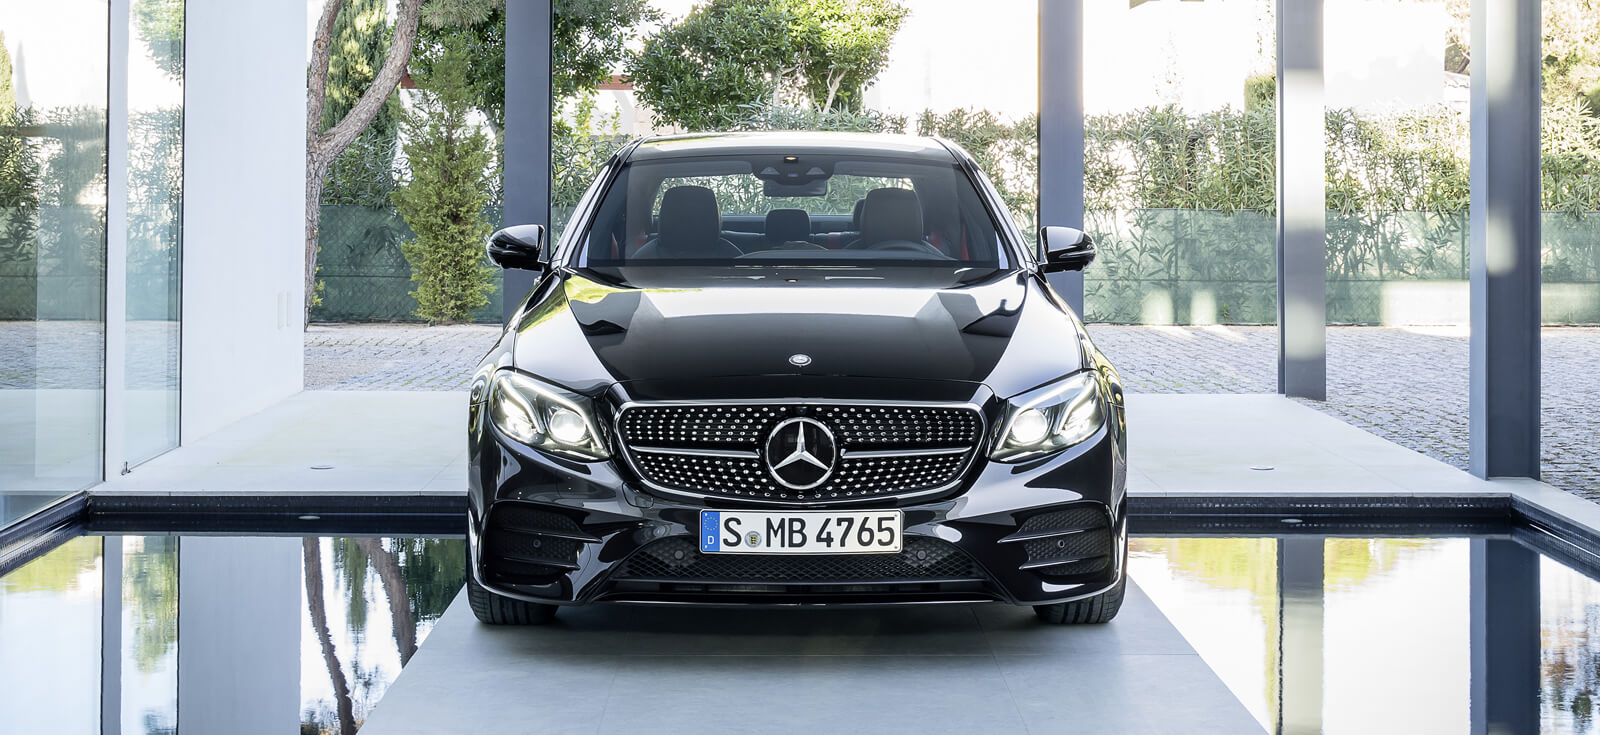 The new Mercedes-AMG E 43 4MATIC